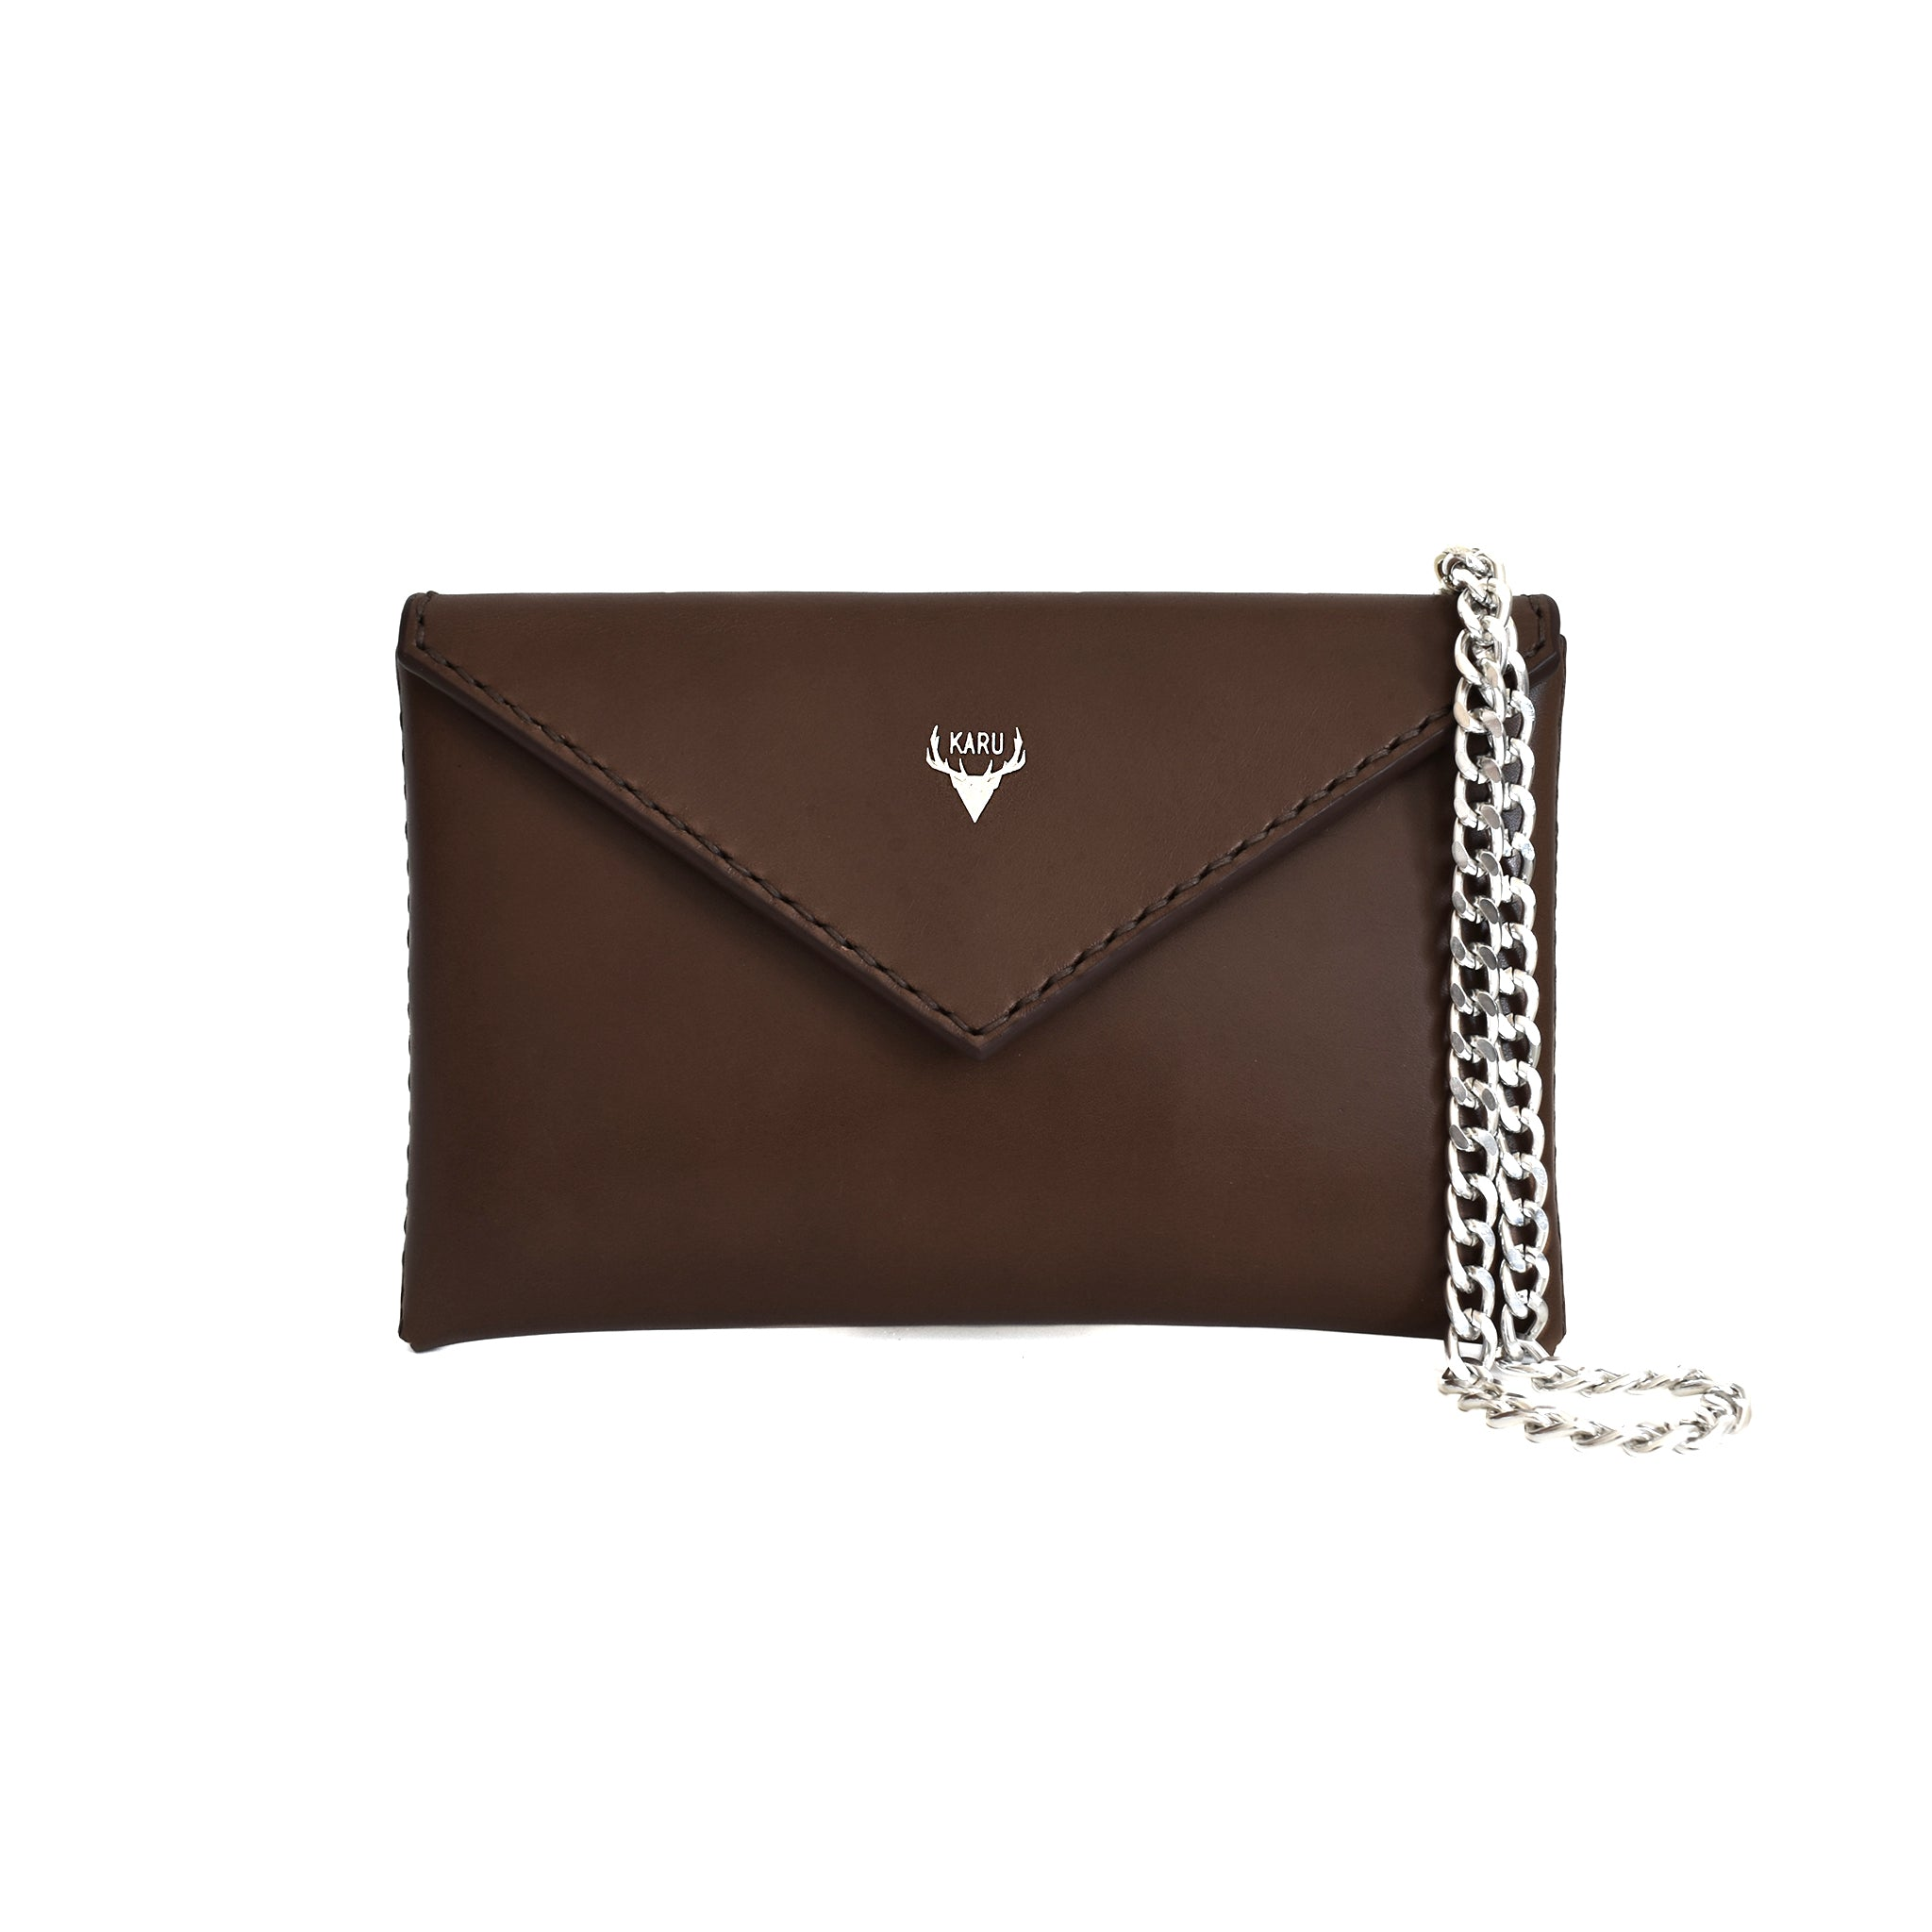 front of handcrafted brown leather envelope handbag clutch bag made from vegetable tanned sustainable leather